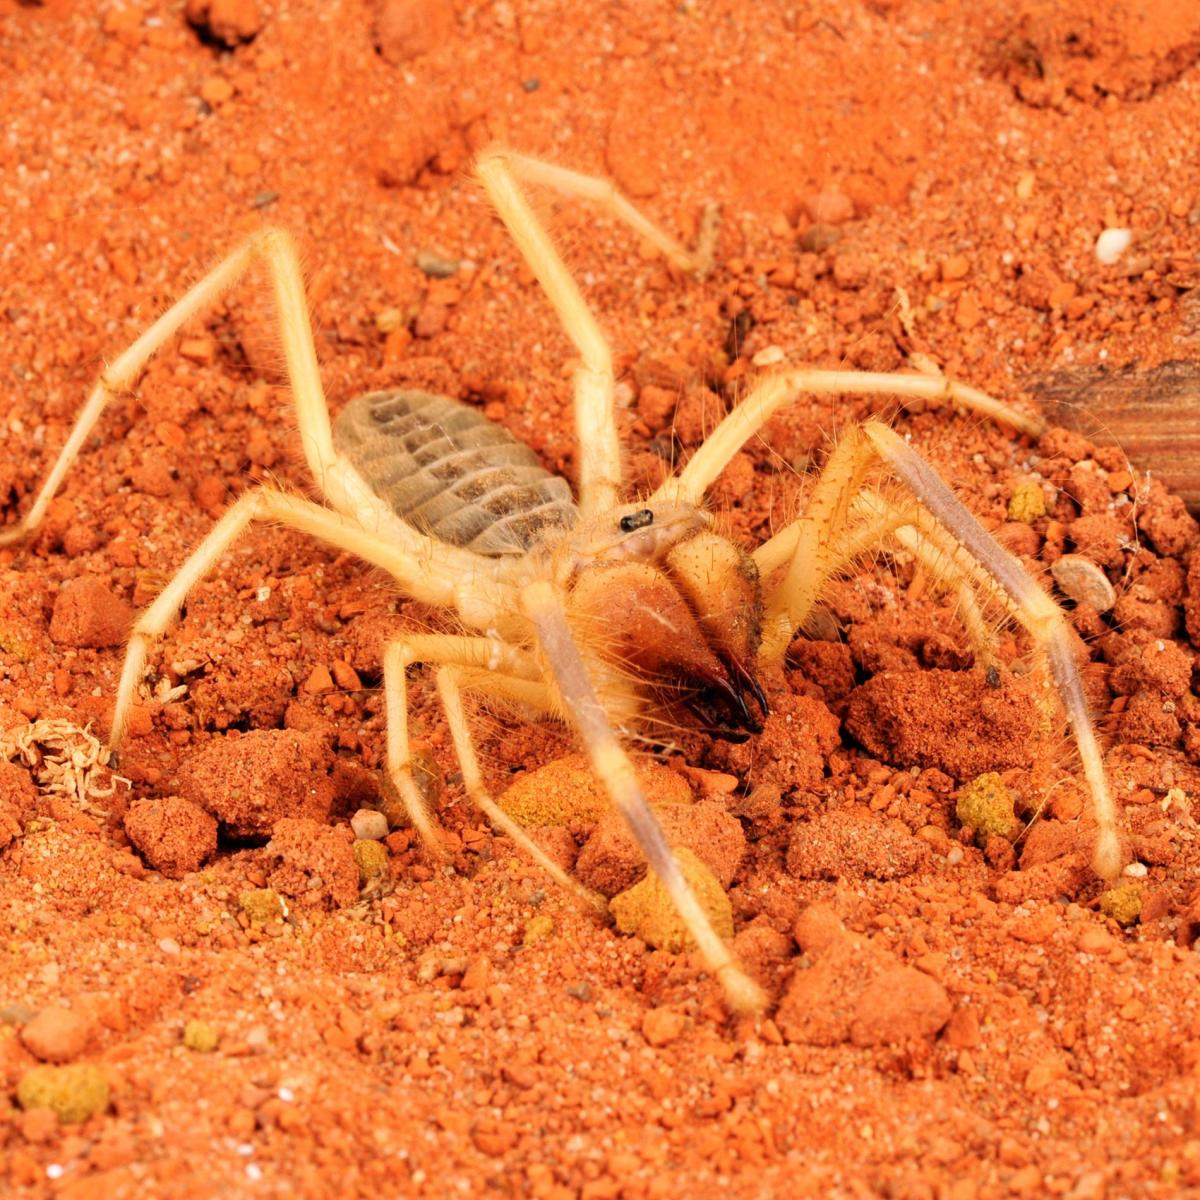 Camel spiders became an Internet sensation during the Iraq war of 2003, when rumors of their bloodthirsty nature began to circulate online